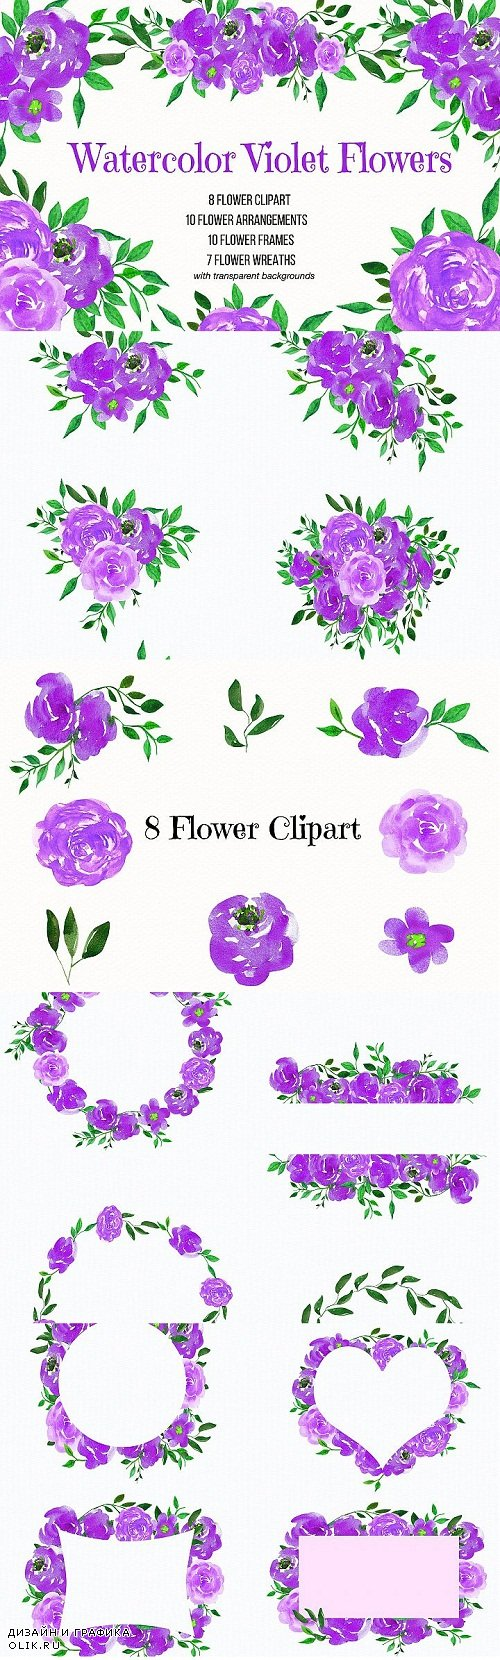 Watercolor Flower Clipart - 2410527